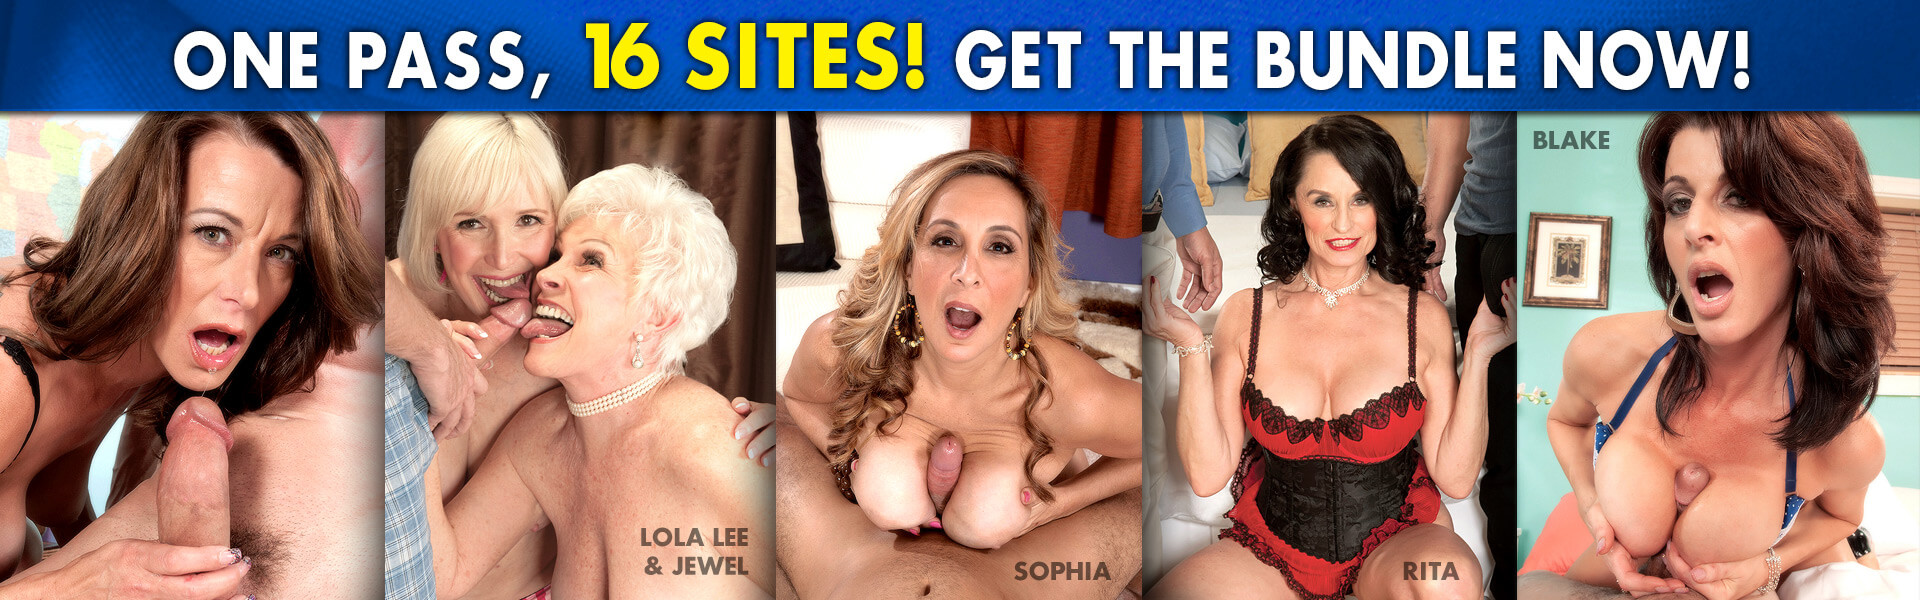 MILF sites - Join Now!